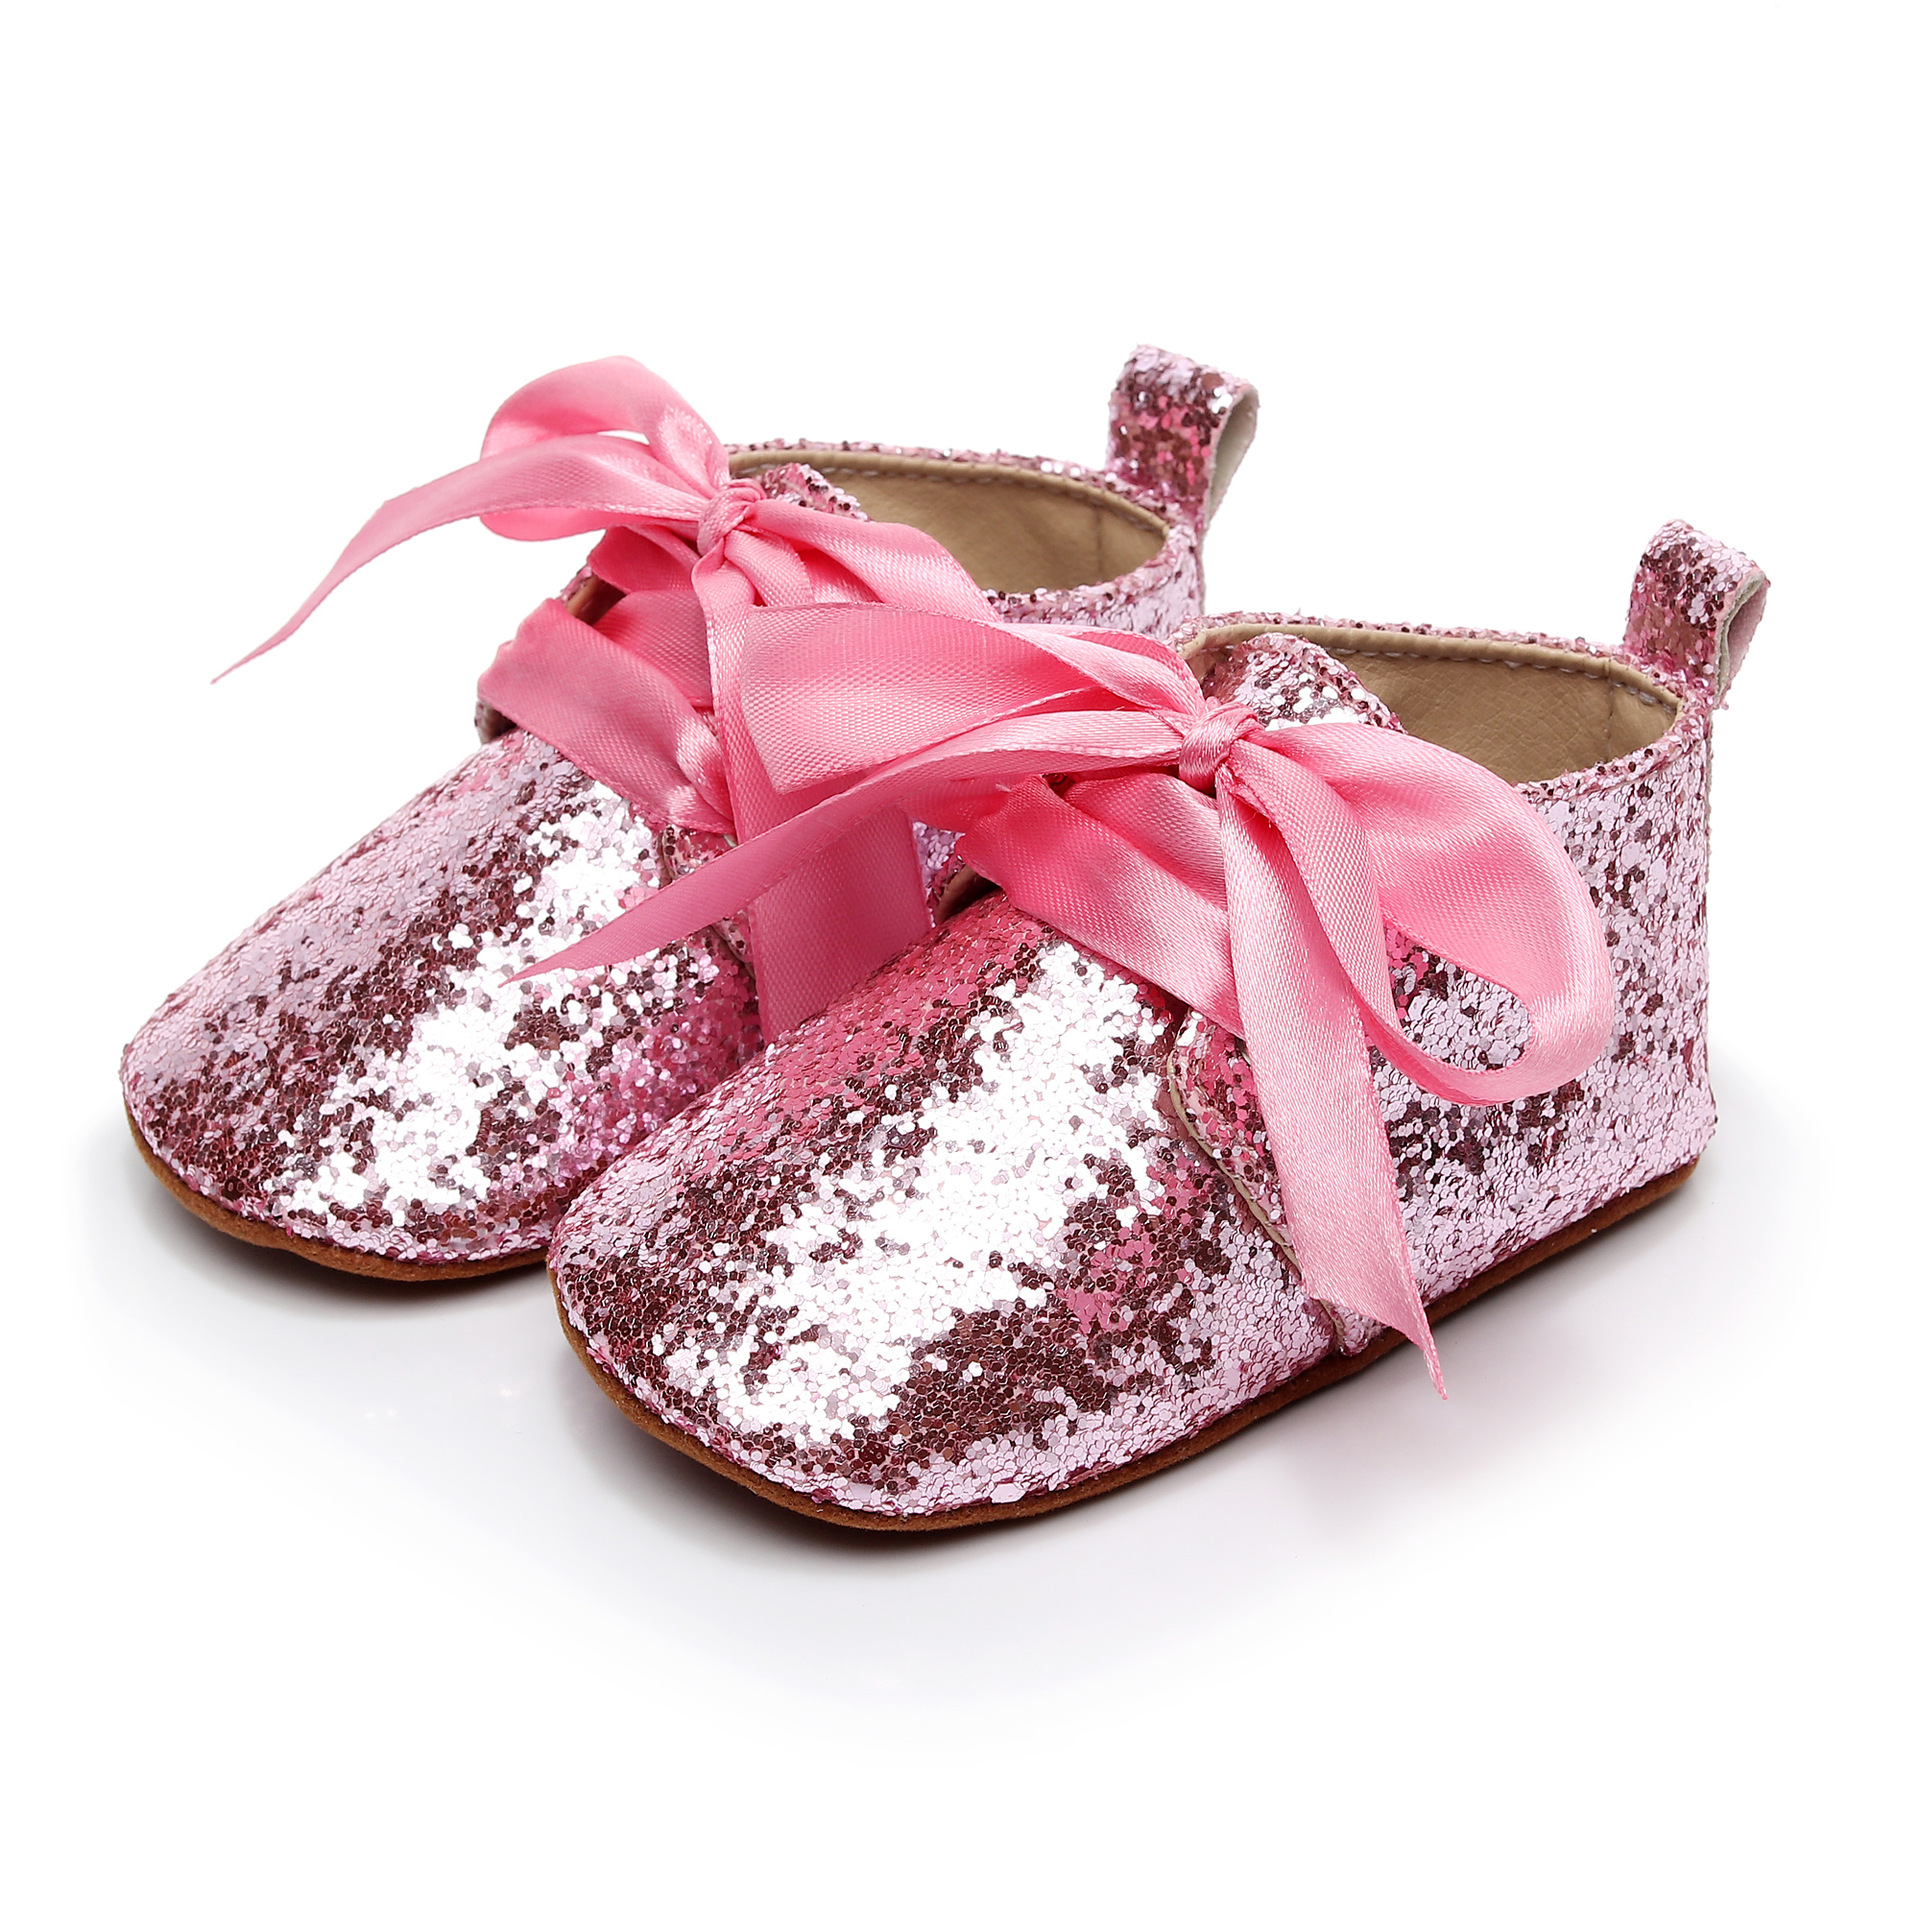 2018 A New European and American Explosion Lace Childrens Shoes Fashion Bling Baby Moccasins First Walkers